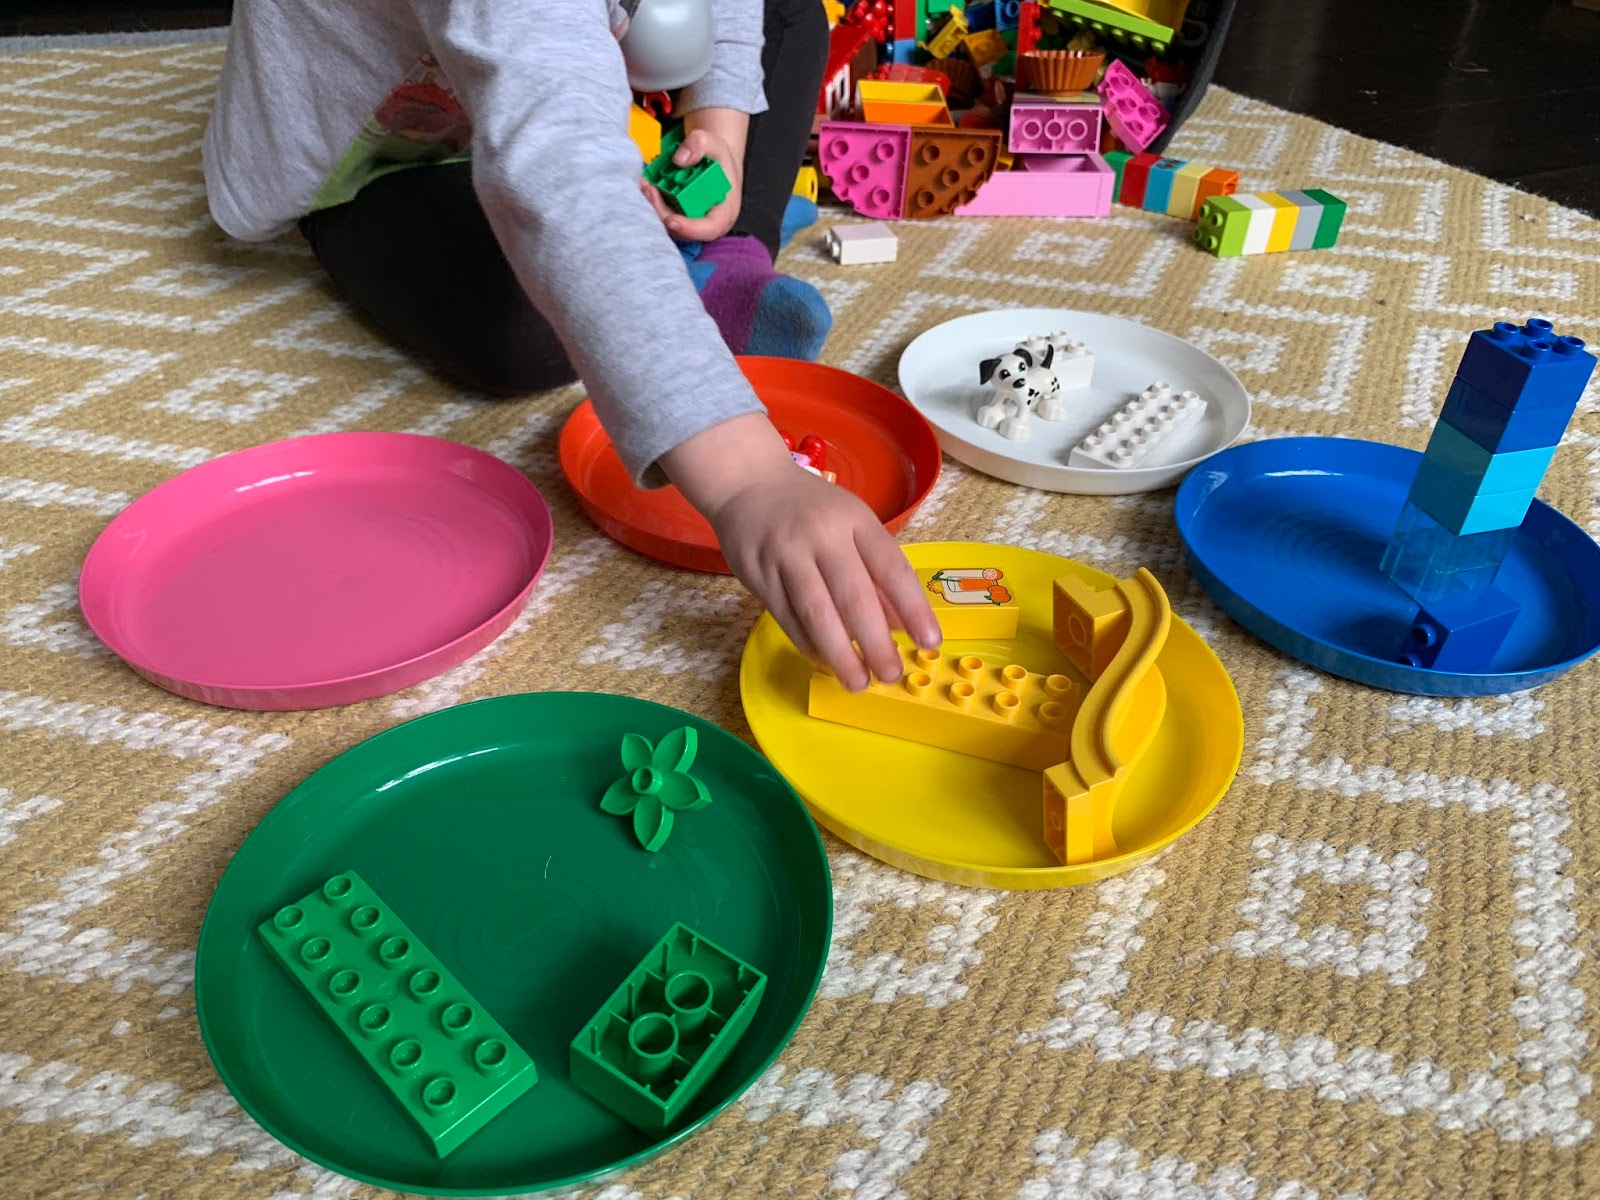 Lego Duplo Colour Sorting Activity For Toddlers And